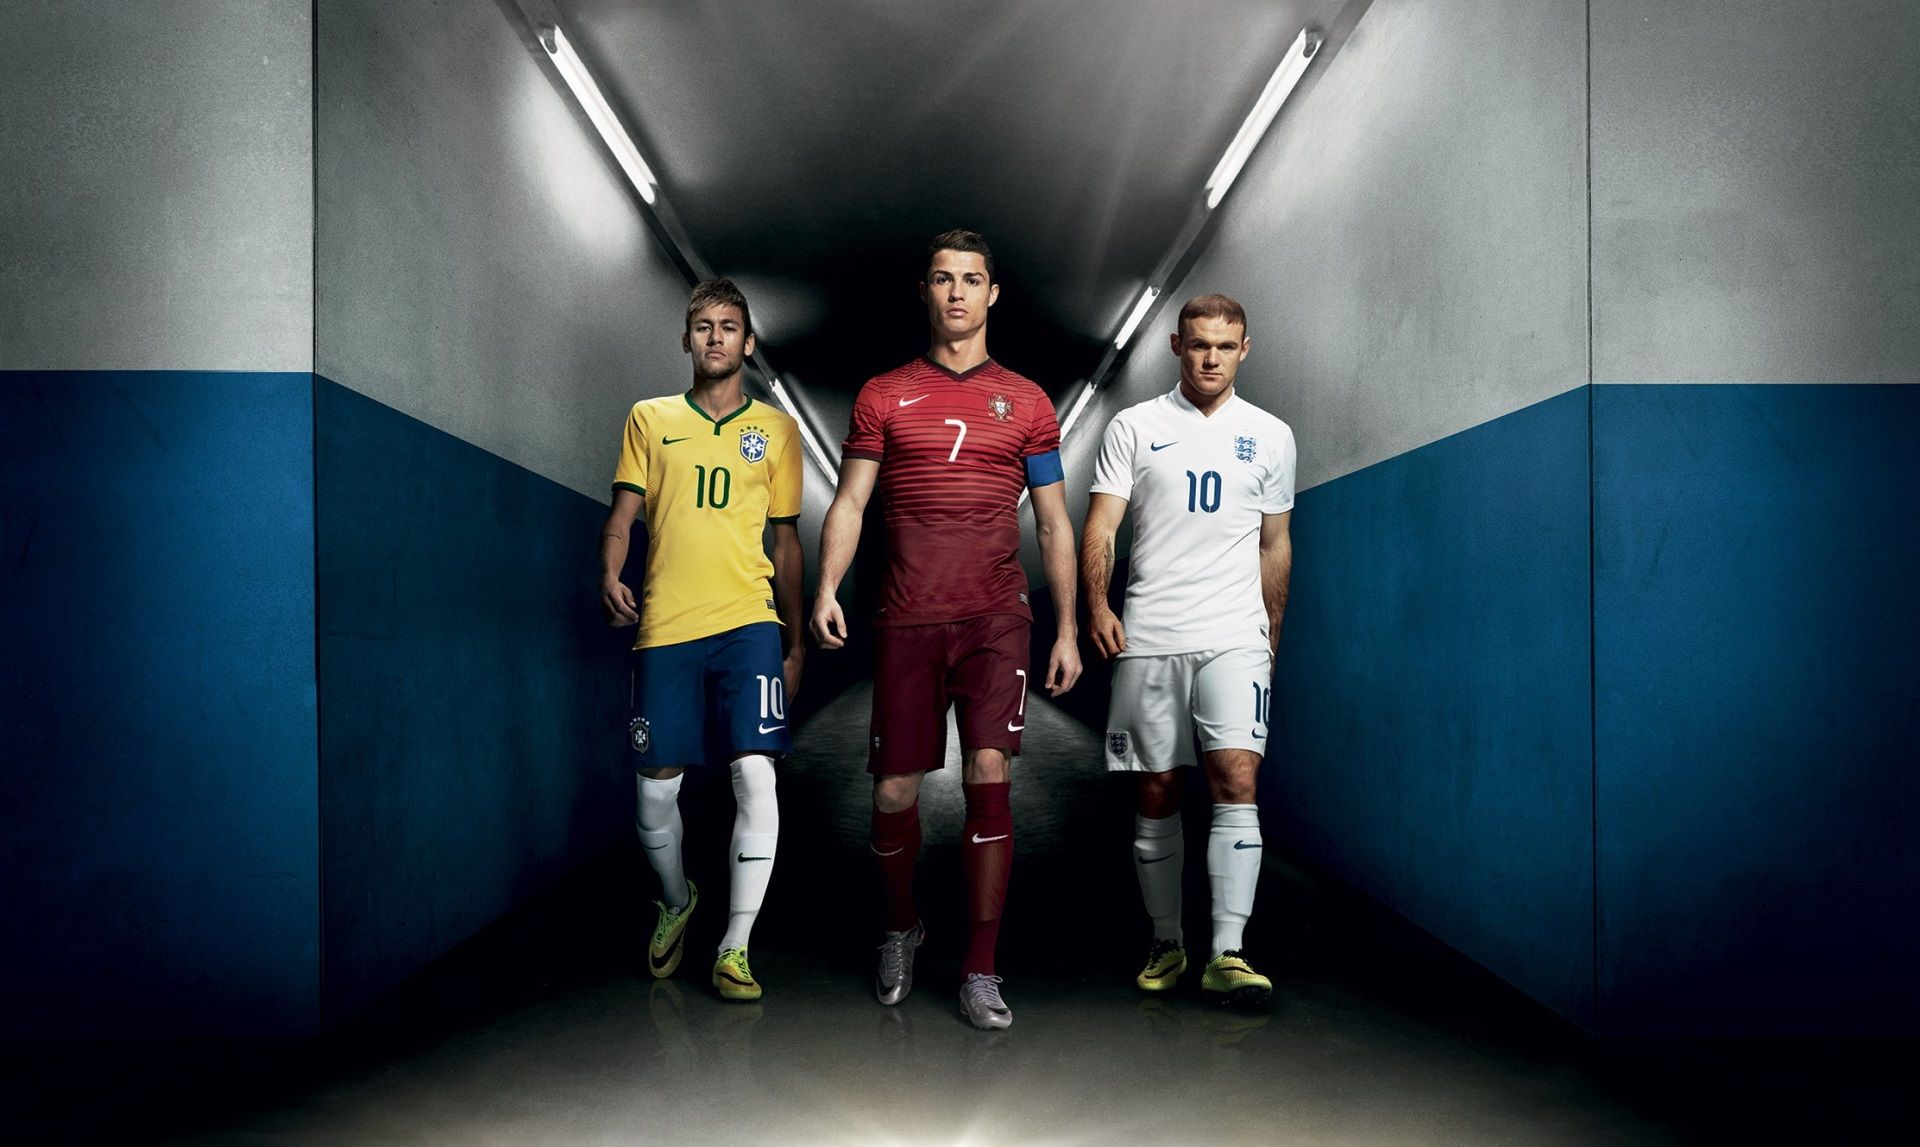 Nike Football | Risk Everything feat. Cristiano Ronaldo, Neymar & Wayne Rooney